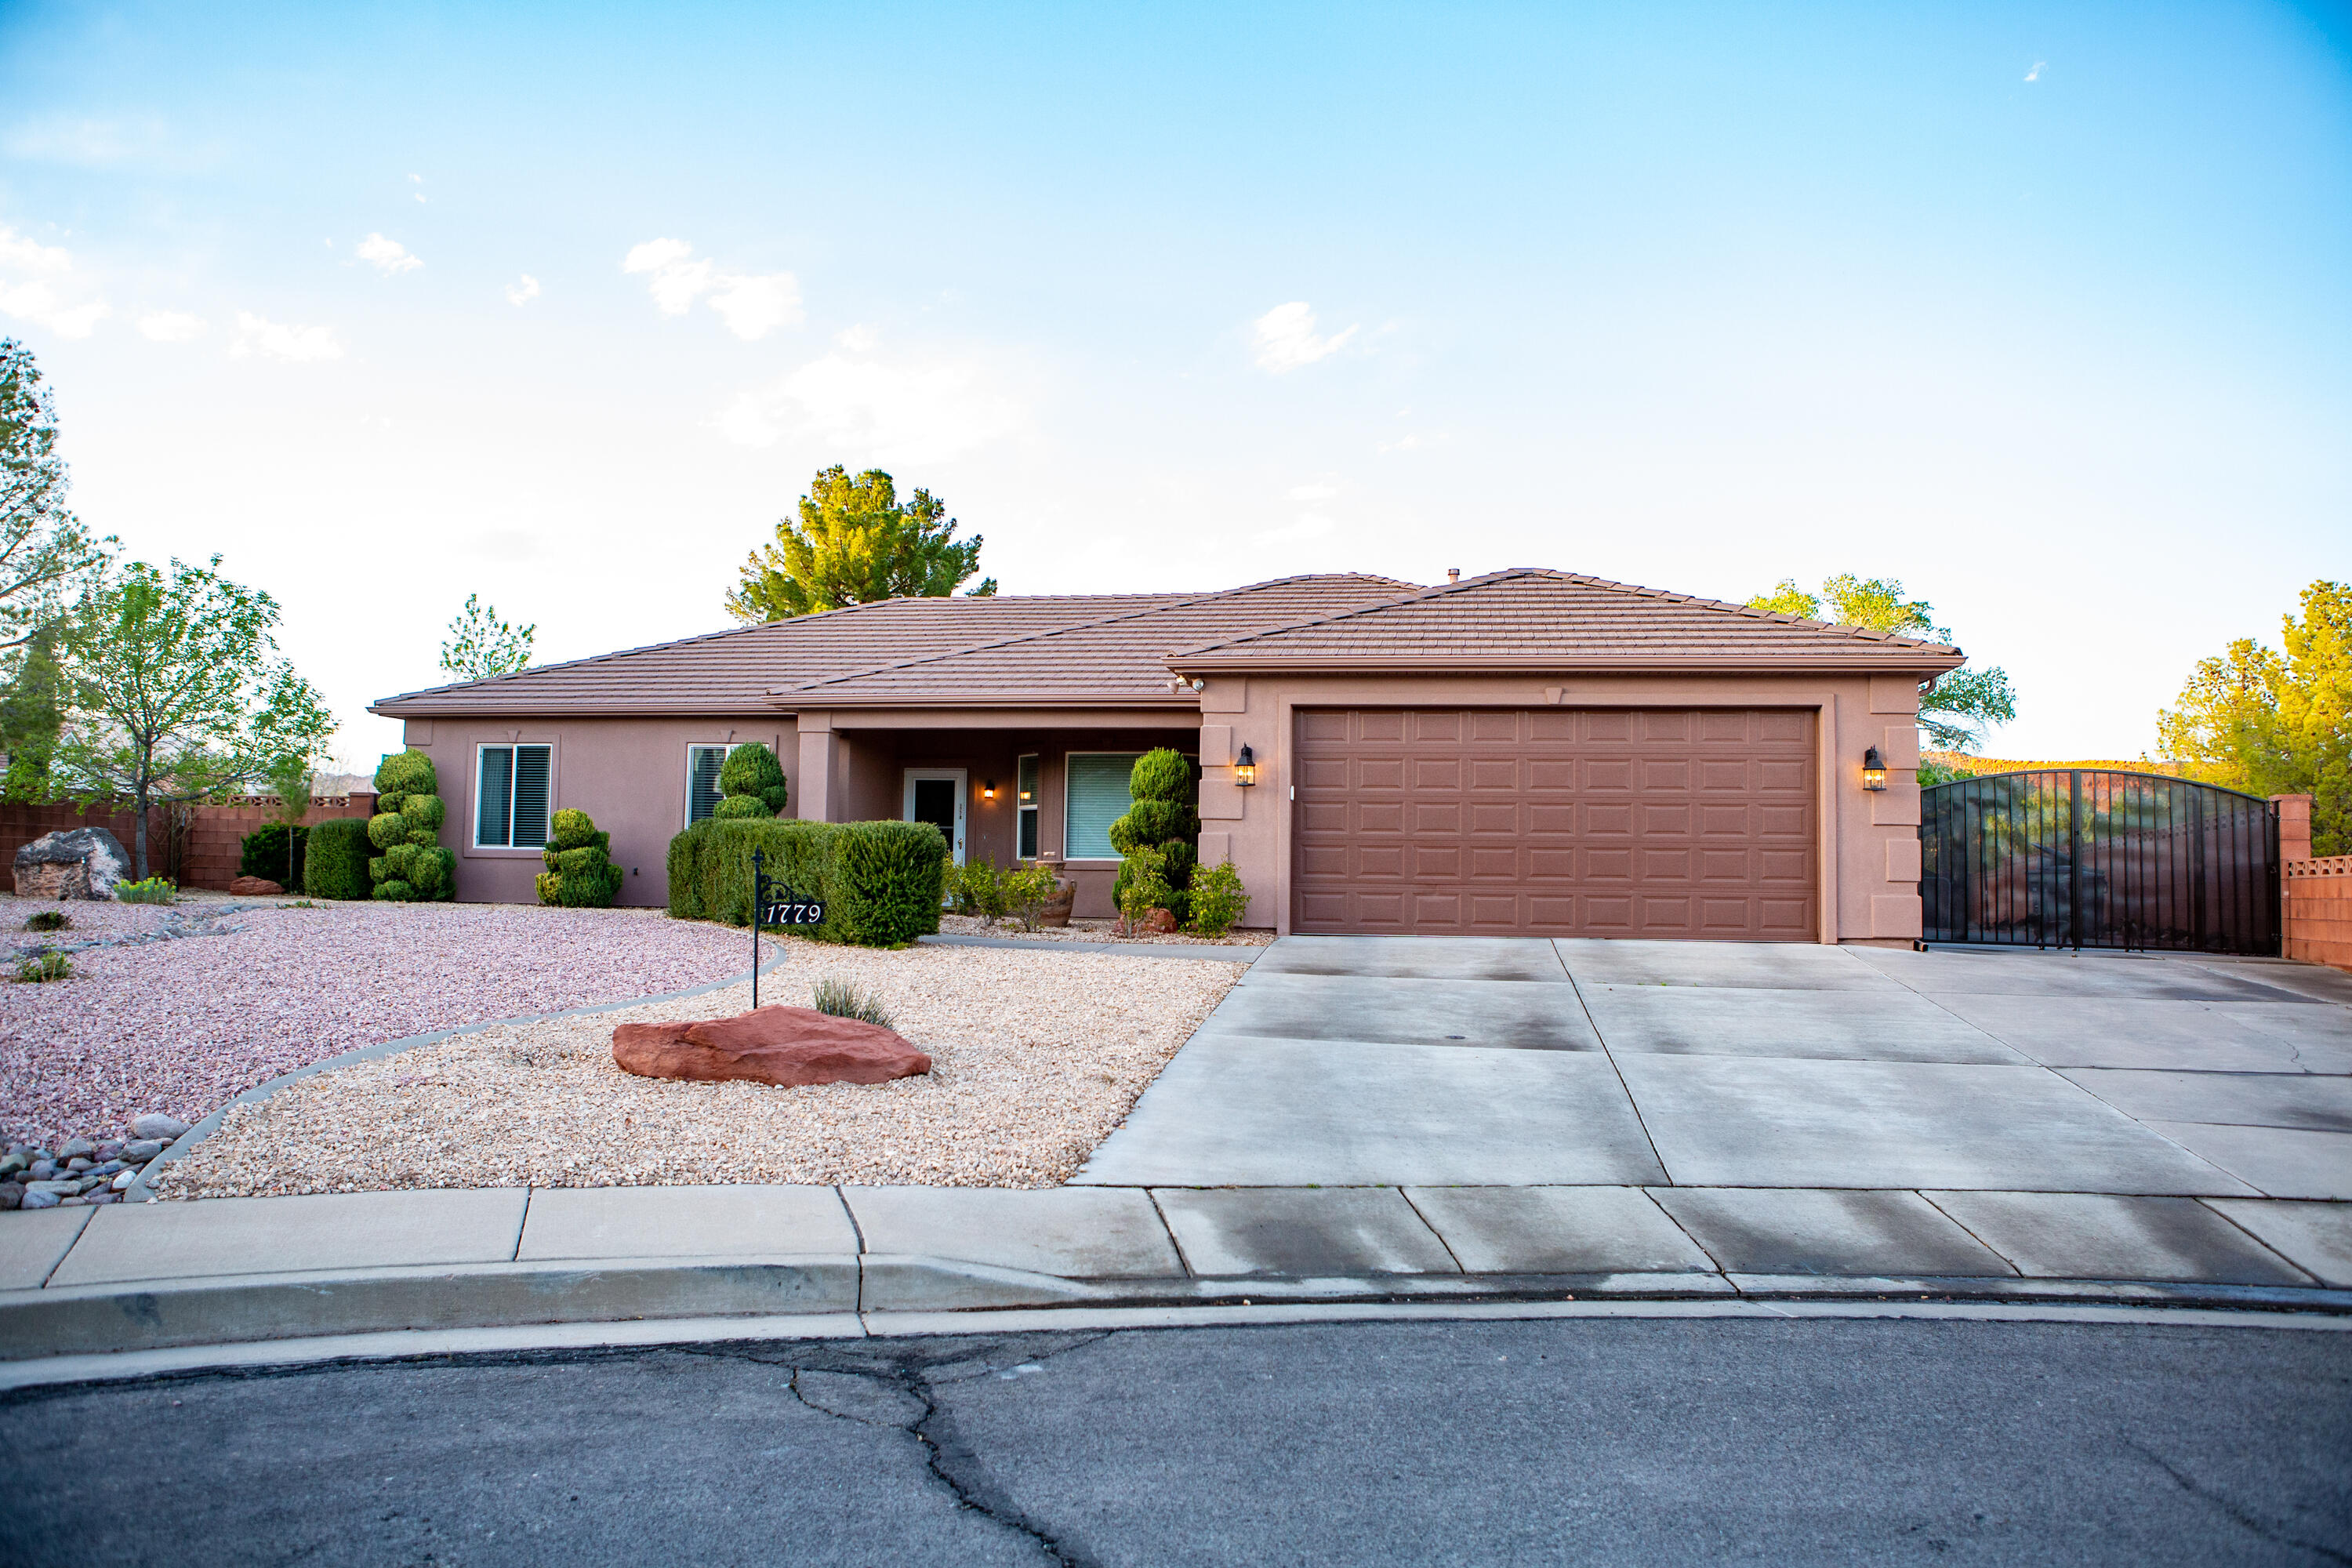 1779 N 2330 W Cir, St George Ut 84770